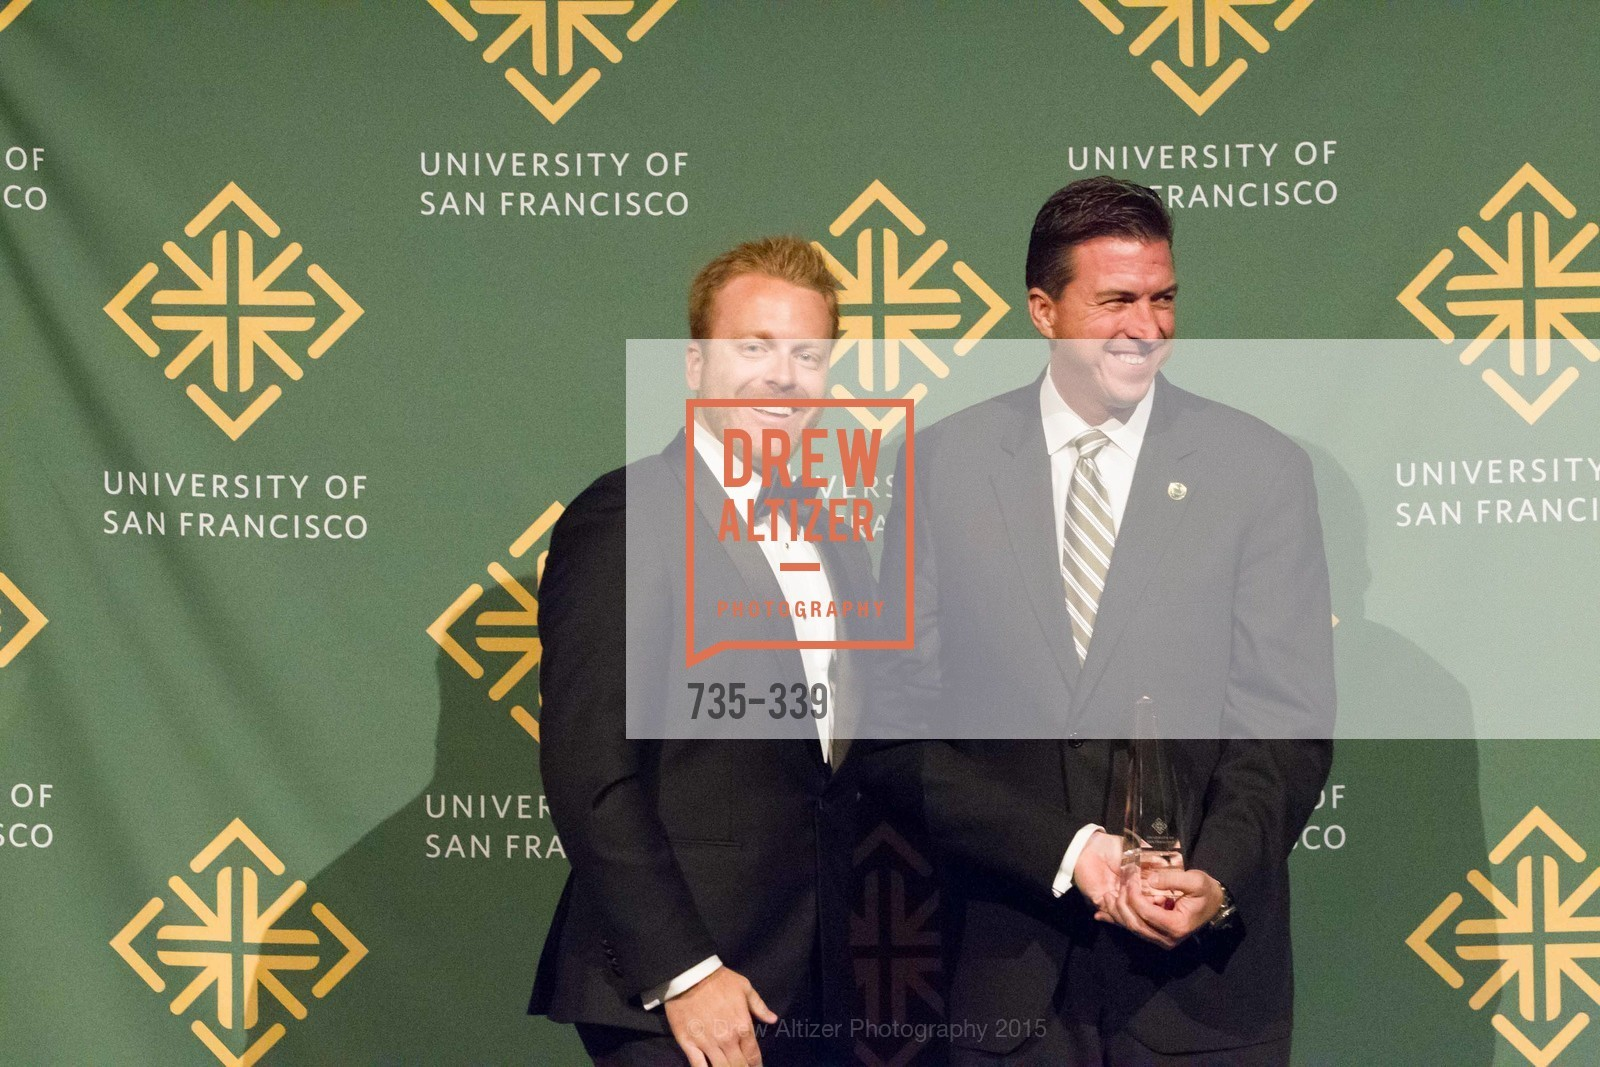 Jay Dillon, Kevin Mullin, University of San Francisco Alumni Awards Gala 2015, University of San Francisco, October 2nd, 2015,Drew Altizer, Drew Altizer Photography, full-service agency, private events, San Francisco photographer, photographer california